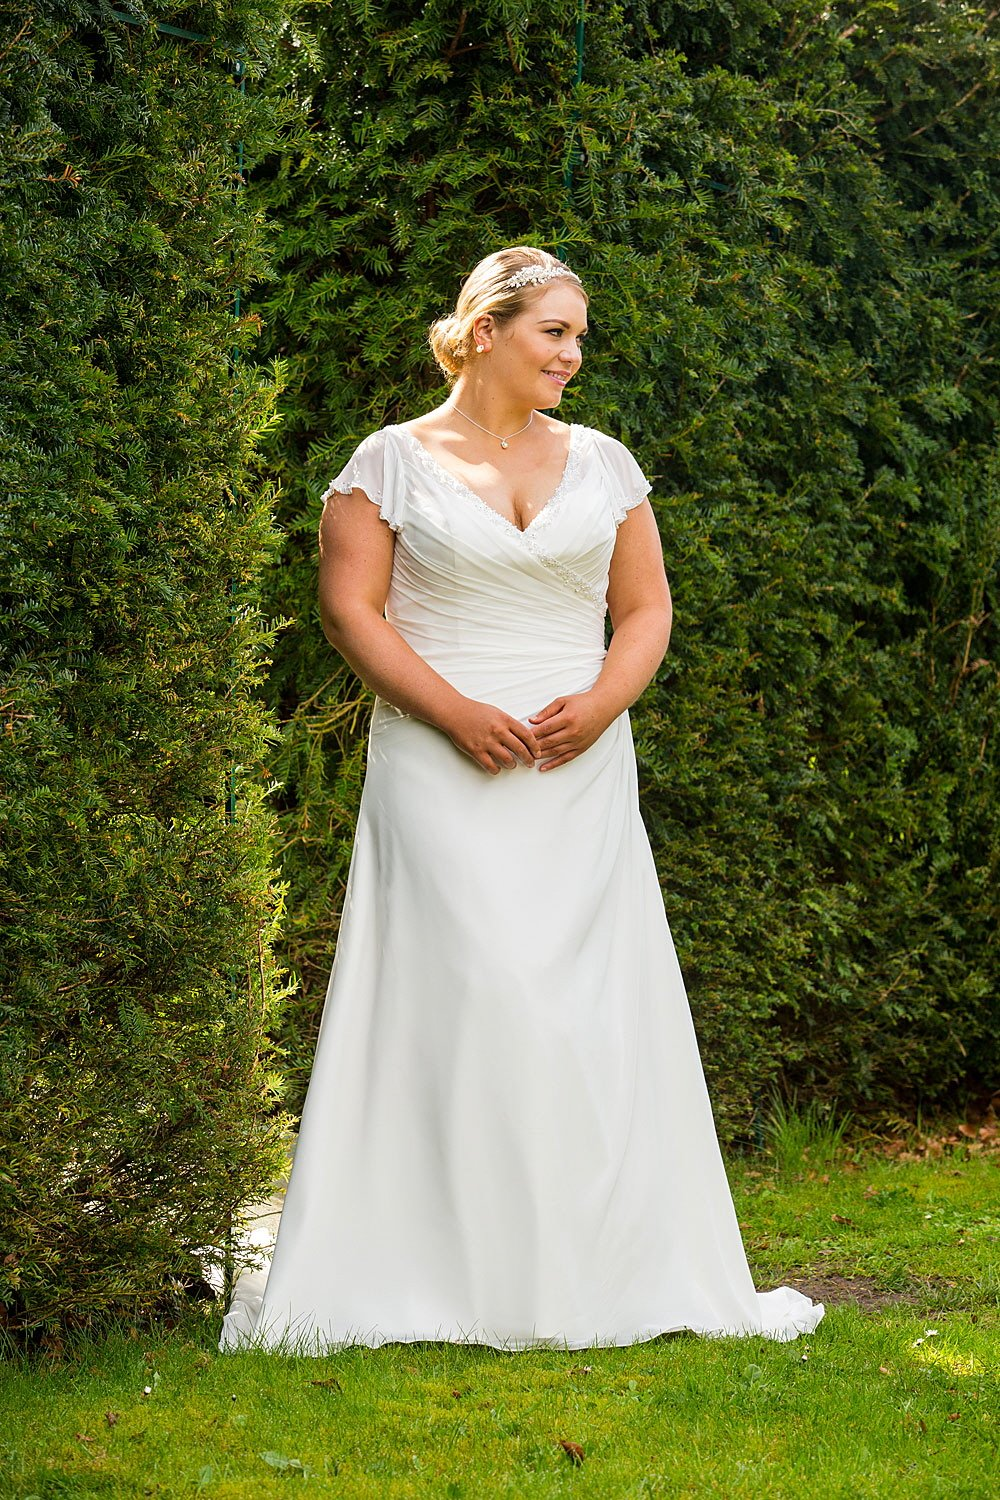 Wedding Dresses For The Fuller Figure In Derry Northern